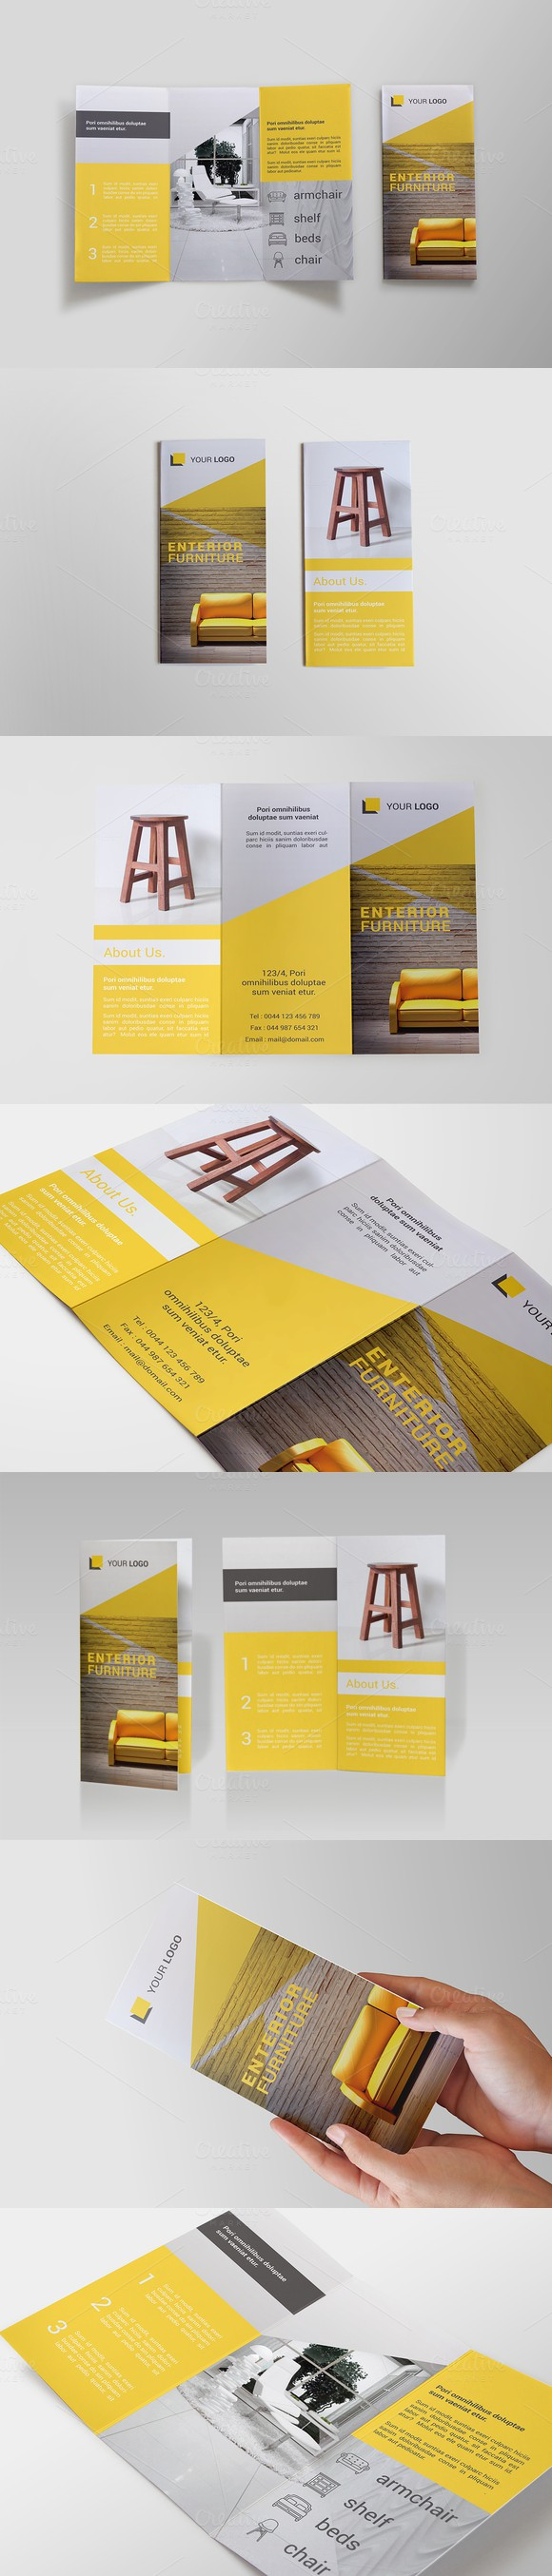 furniture tri fold brochure bms brochure templates pinterest